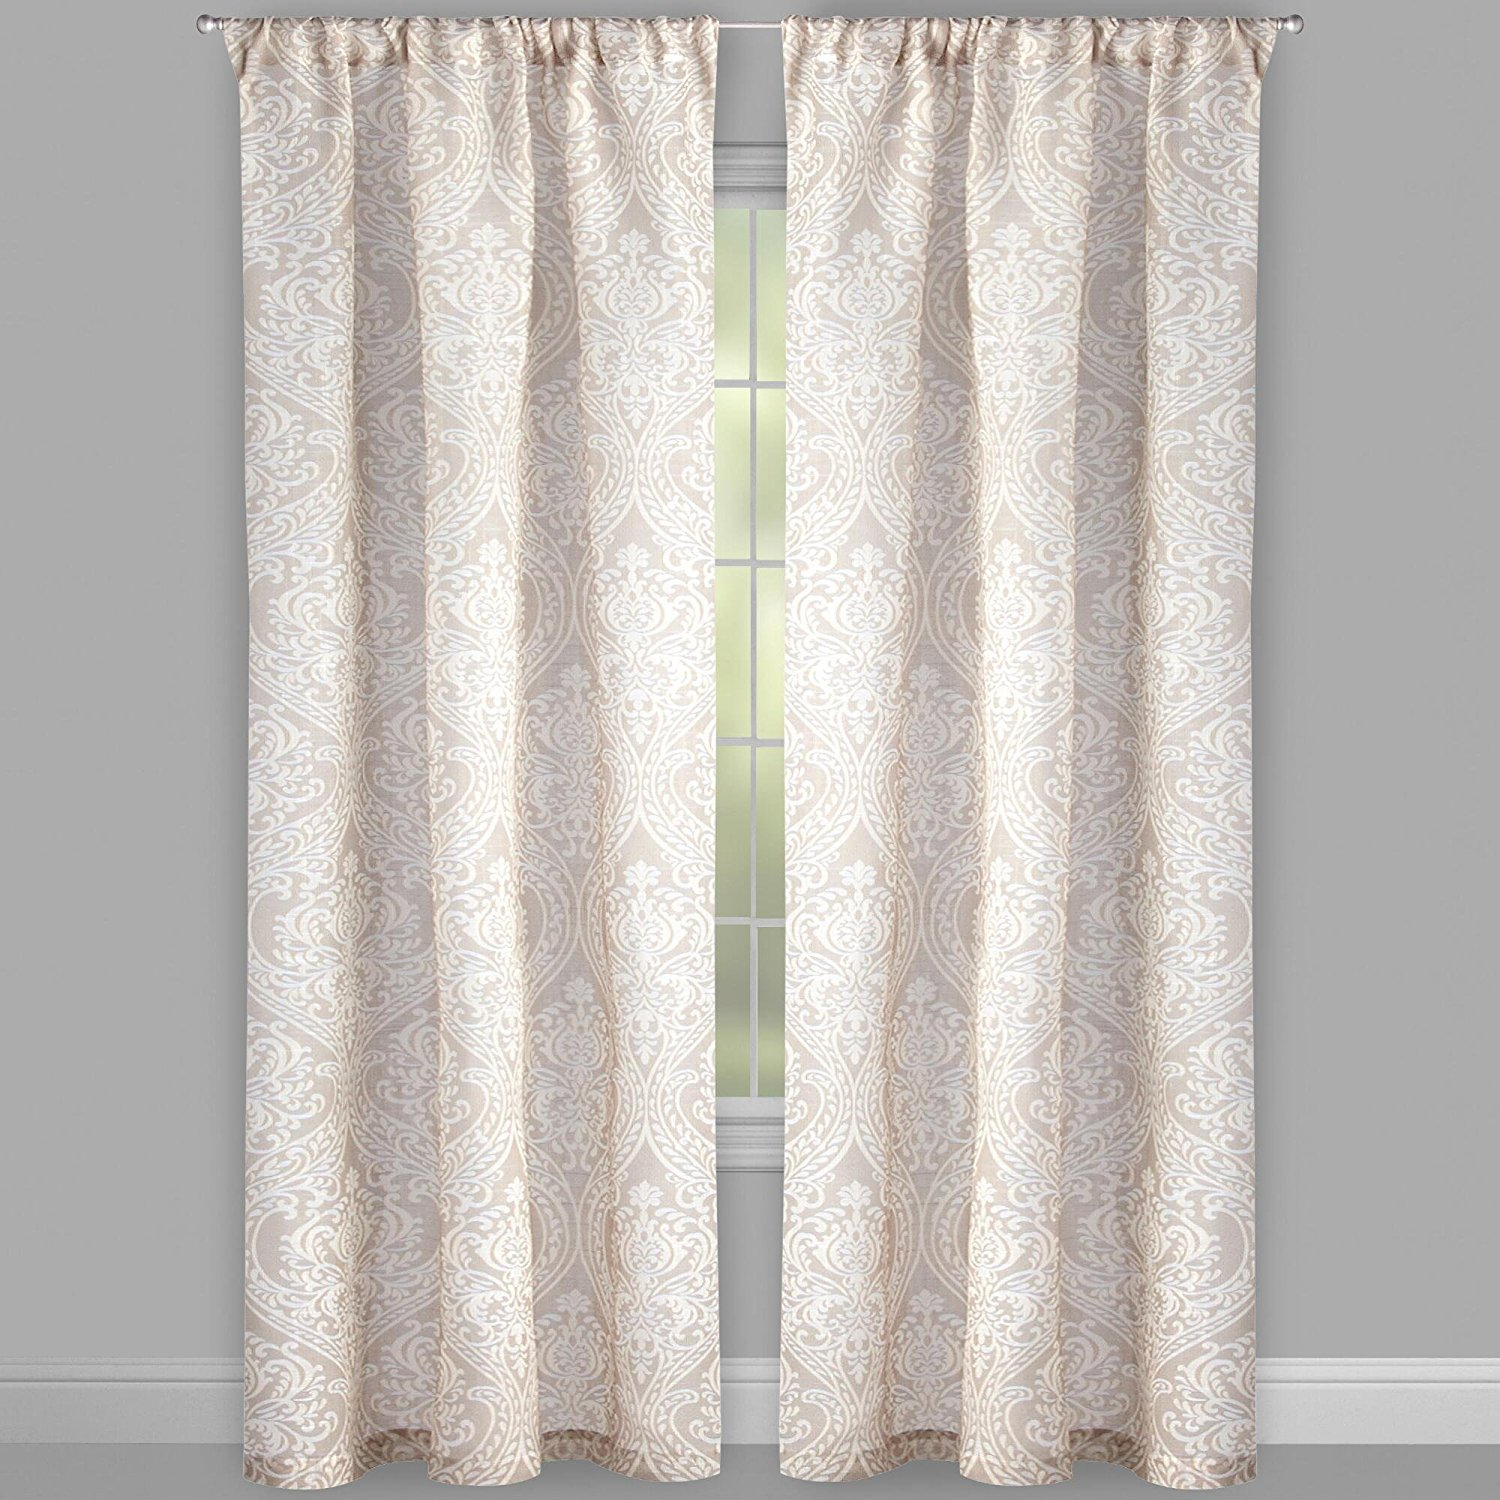 84 Bombay Clay Damask Window Curtains